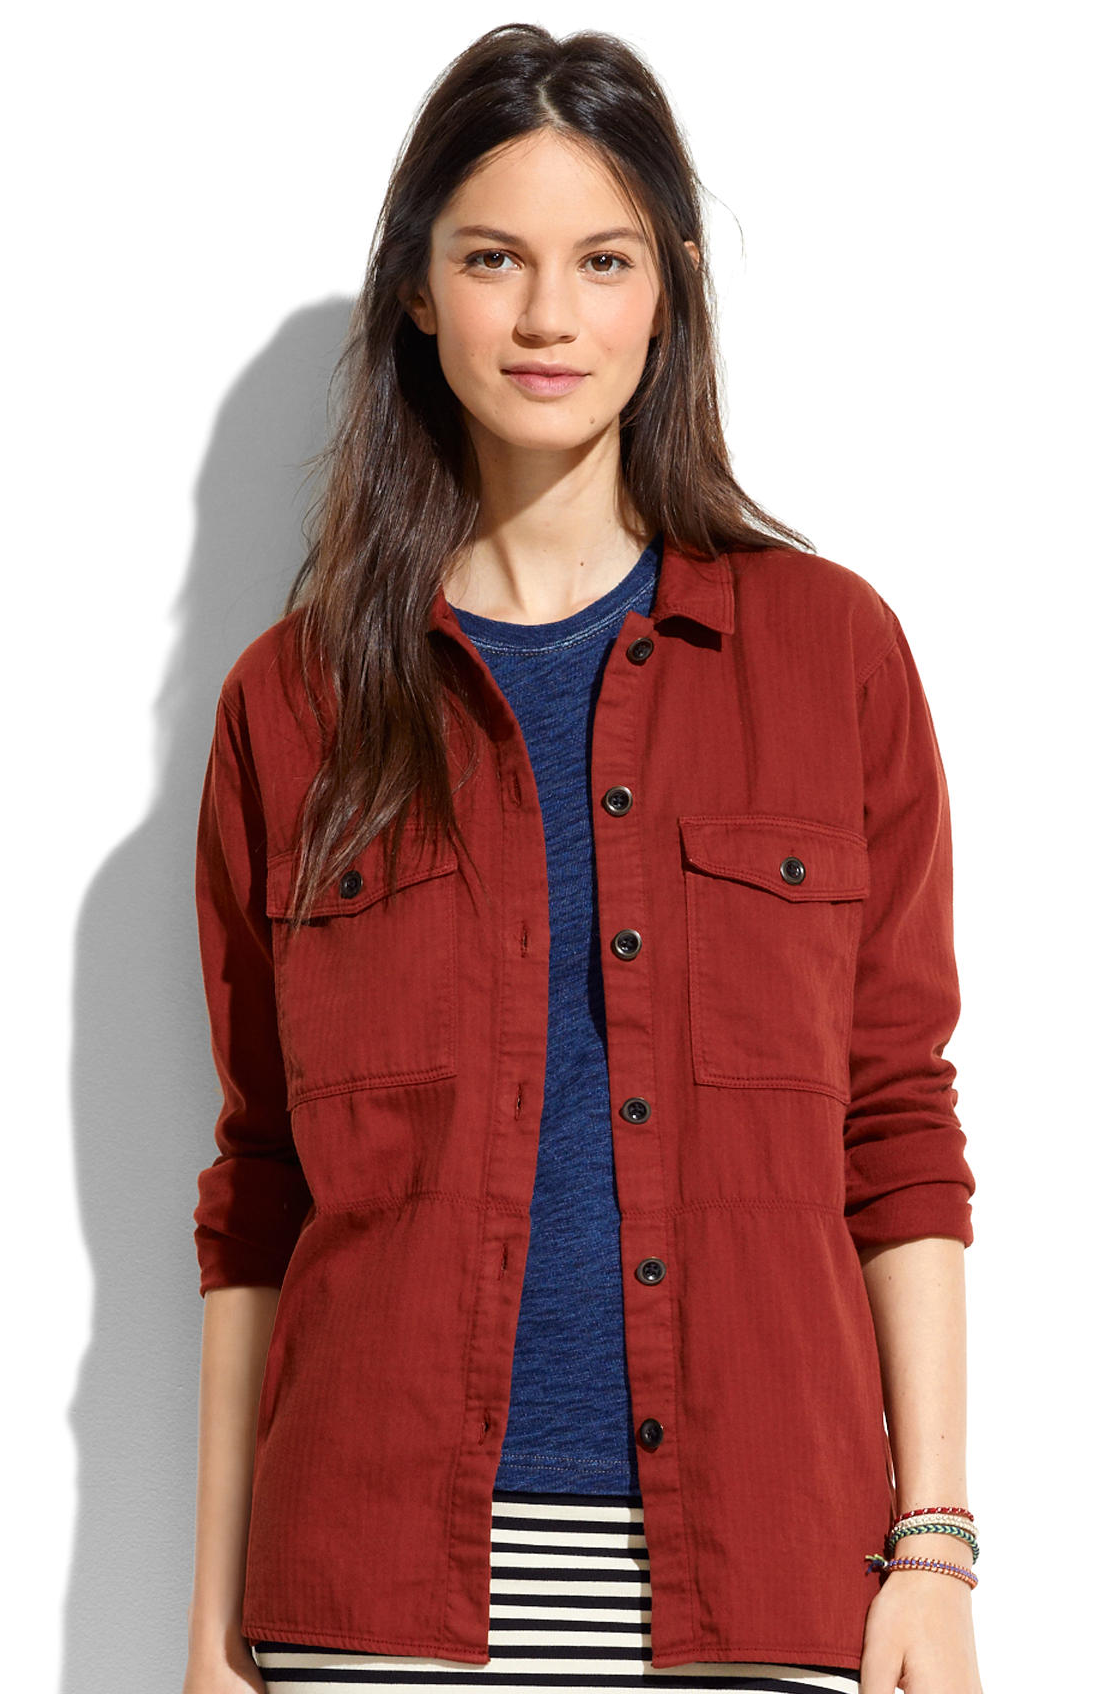 Madewell Herringbone Shirt-Jacket $118.00 The easy throw-it-on-and-go appeal of a favorite button-down, translated into a lightweight jacket. True to size. Cotton. Machine wash. Import.